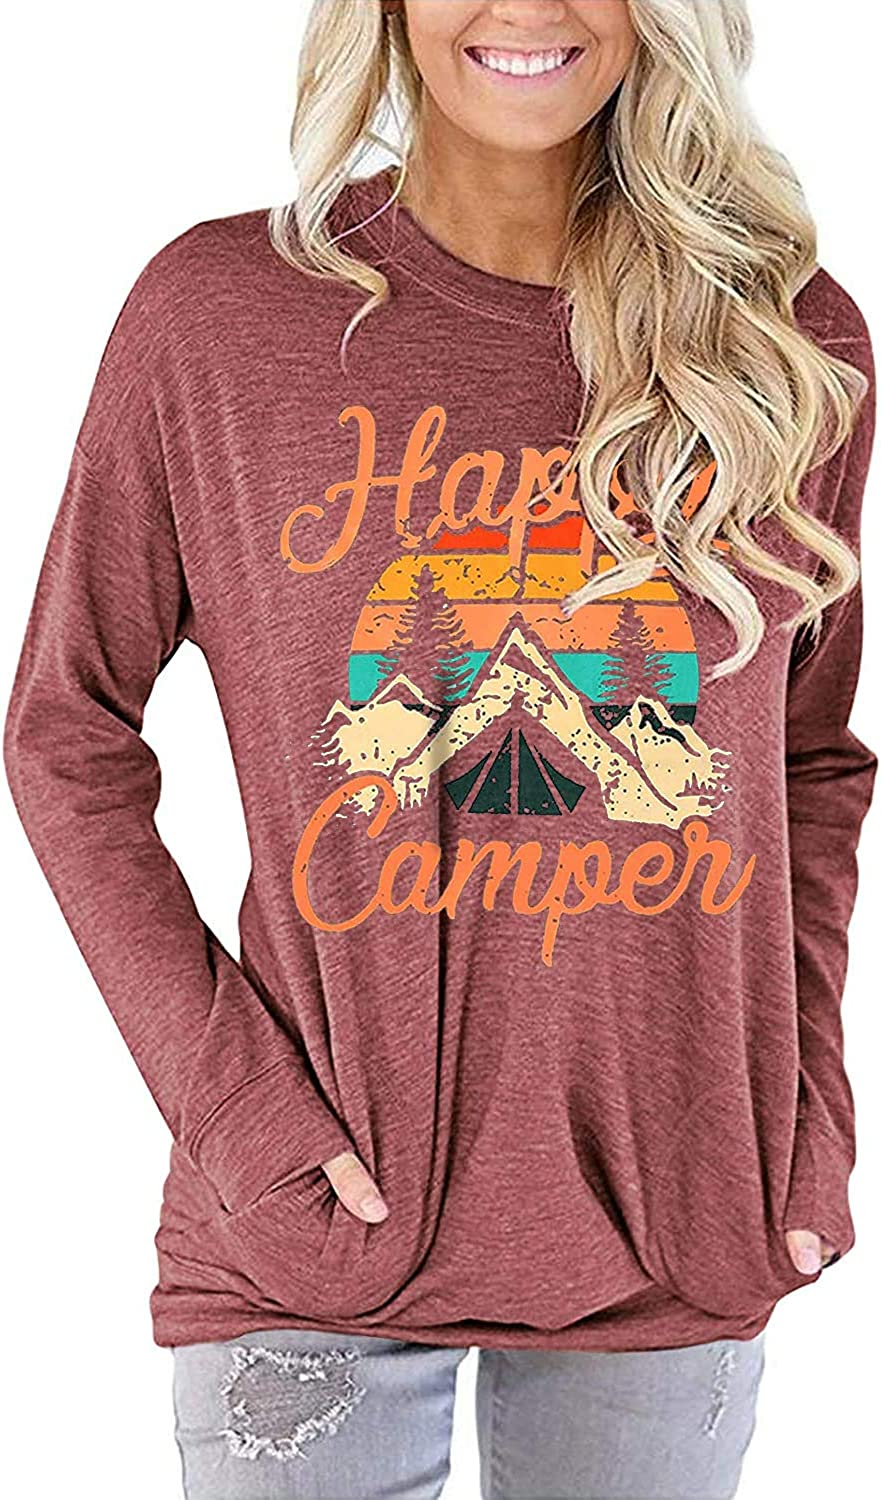 Happy Camper Shirt for Women Funny Cute Graphic Tee Short Sleeve Letter Print Casual Tee Shirts